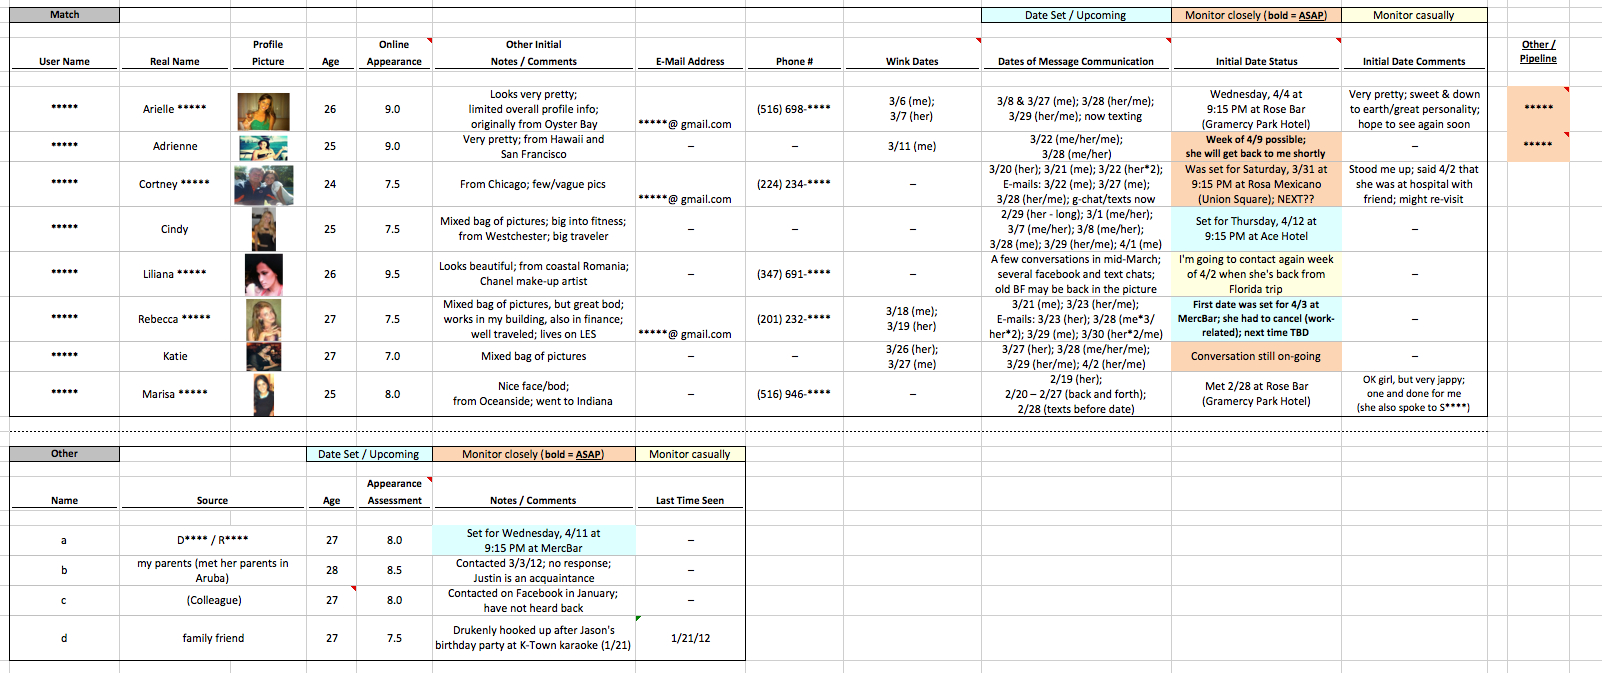 Online Dating Spreadsheet Template In Finance Guy Keeps Incredibly Detailed, Incredibly Creepy Spreadsheet